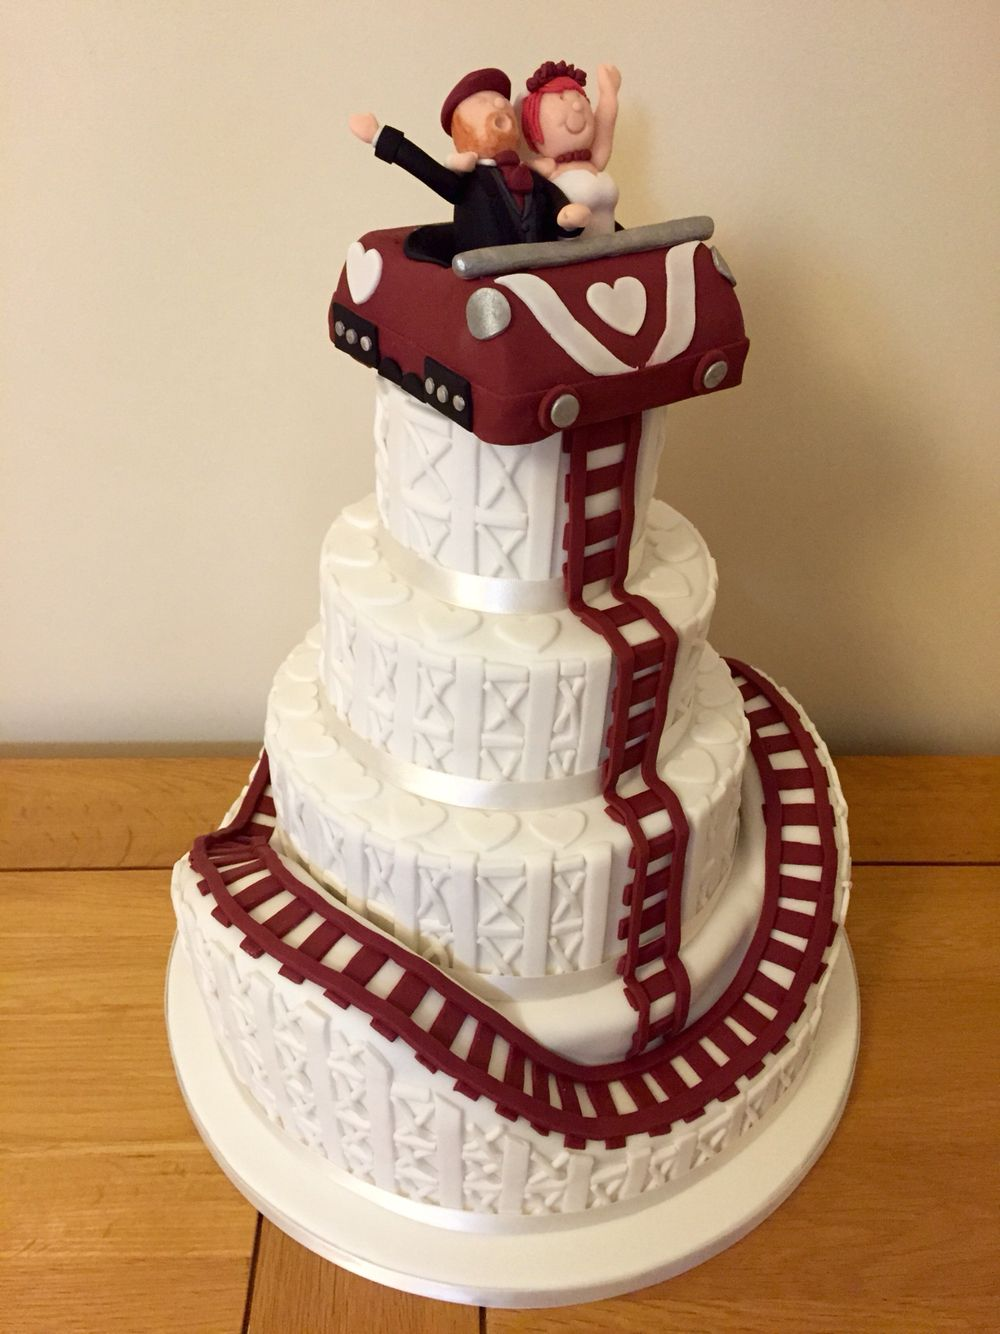 A Four Tier Wedding Cake With An Unusually Roller Coaster Theme Tiered Wedding Cake Cake Wedding Cakes